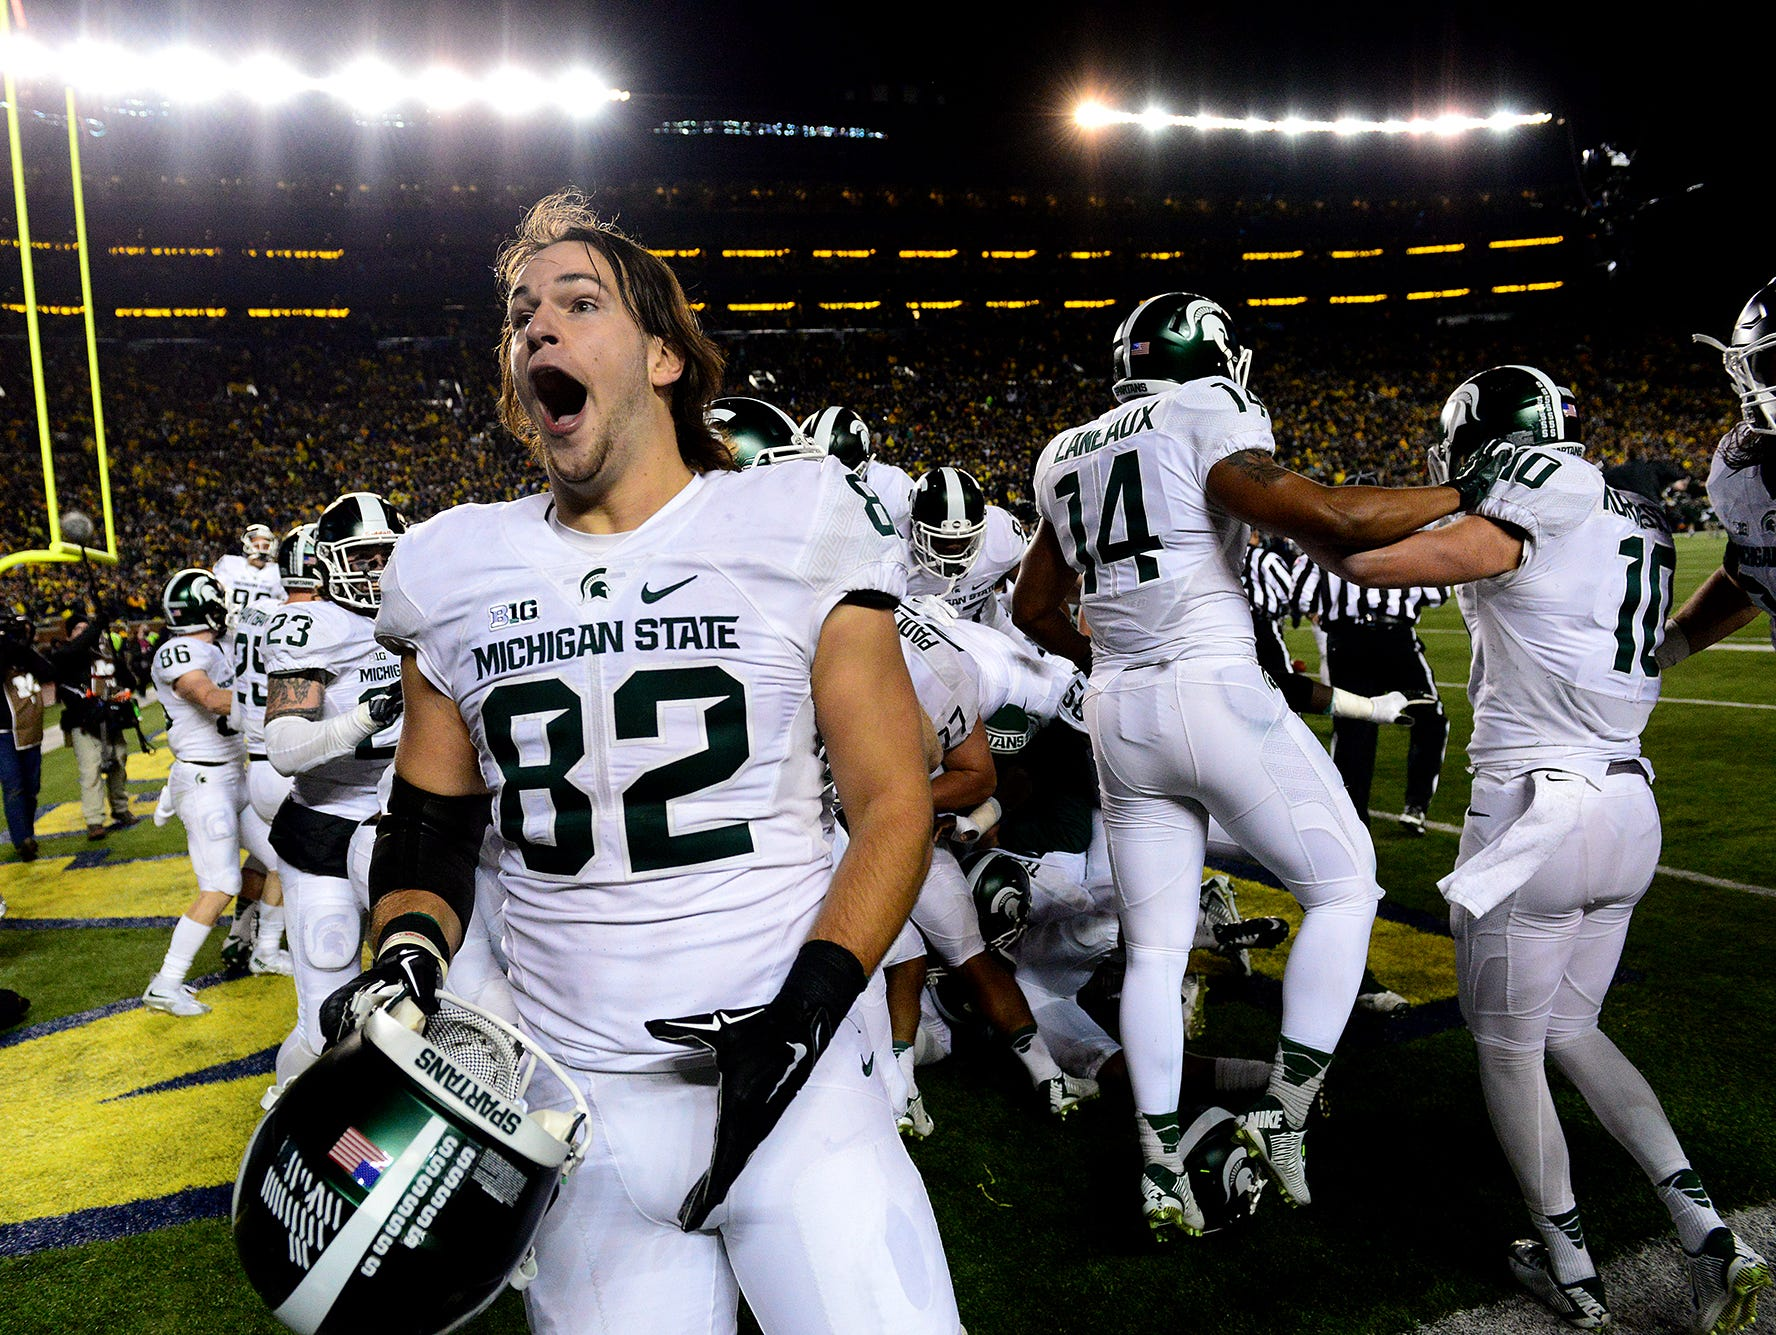 Michigan State tight end Josiah Price screams as he celebrates with teammates after a thrilling, last-second 27-23 victory over Michigan Saturday in Ann Arbor.